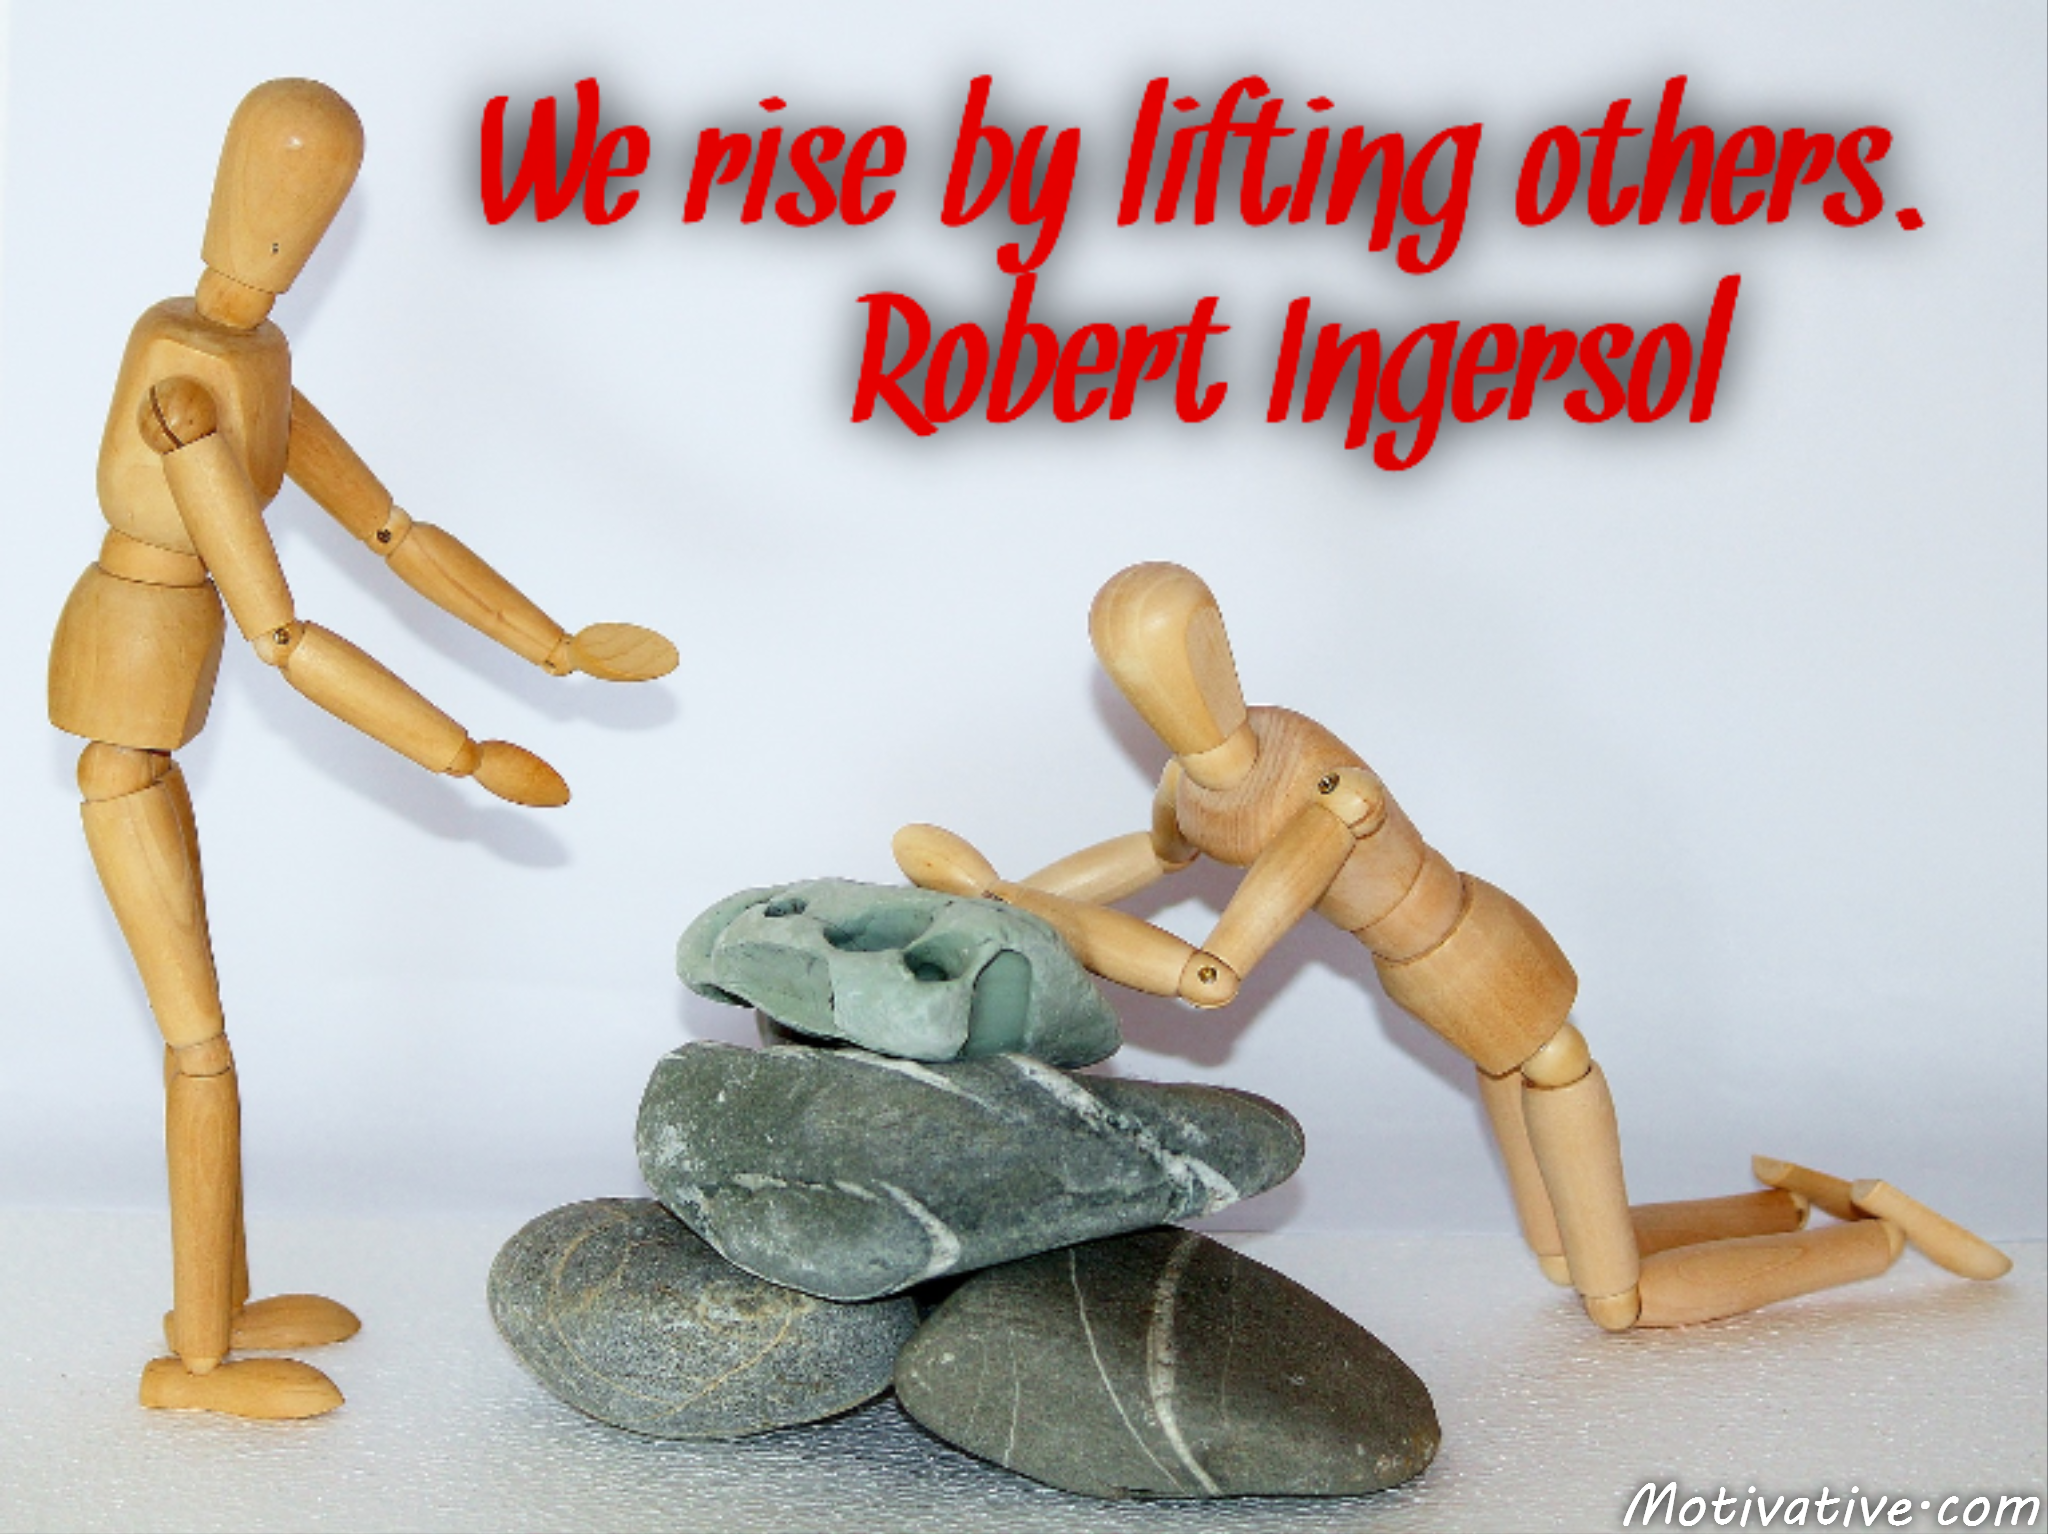 We rise by lifting others. – Robert Ingersol